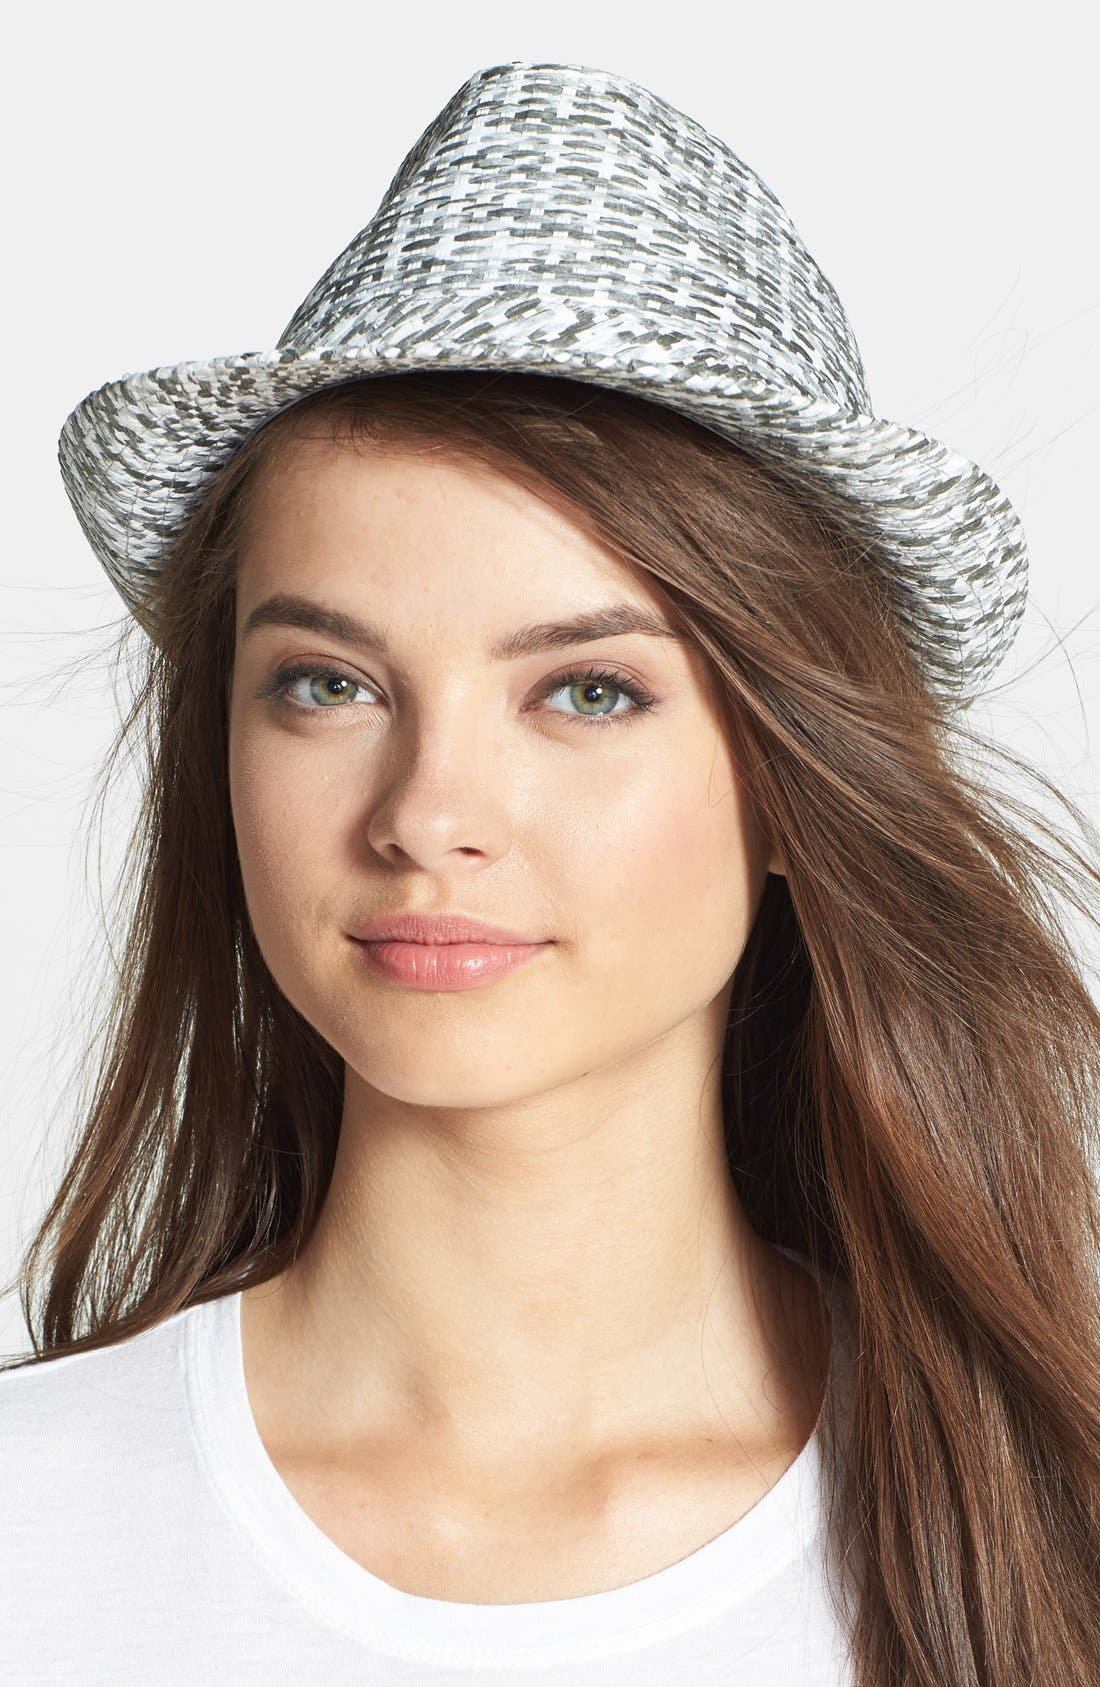 Alternate Image 1 Selected - Steve Madden 'Wicker' Woven Fedora